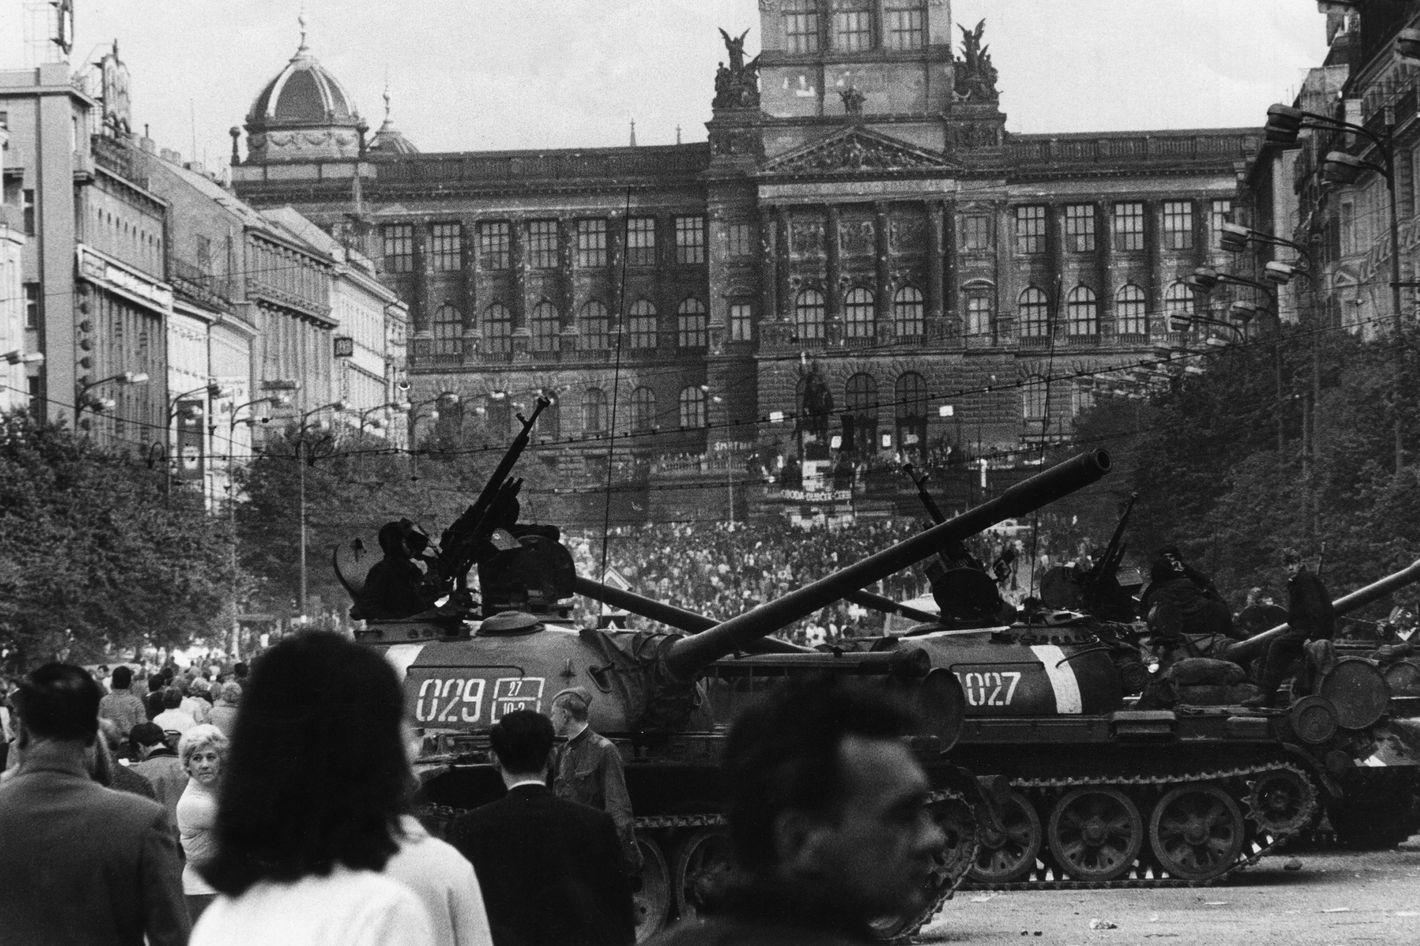 Soviet tanks surrounded by the crowd outside the National Museum in Wenceslas Square in Prague, August 1968.